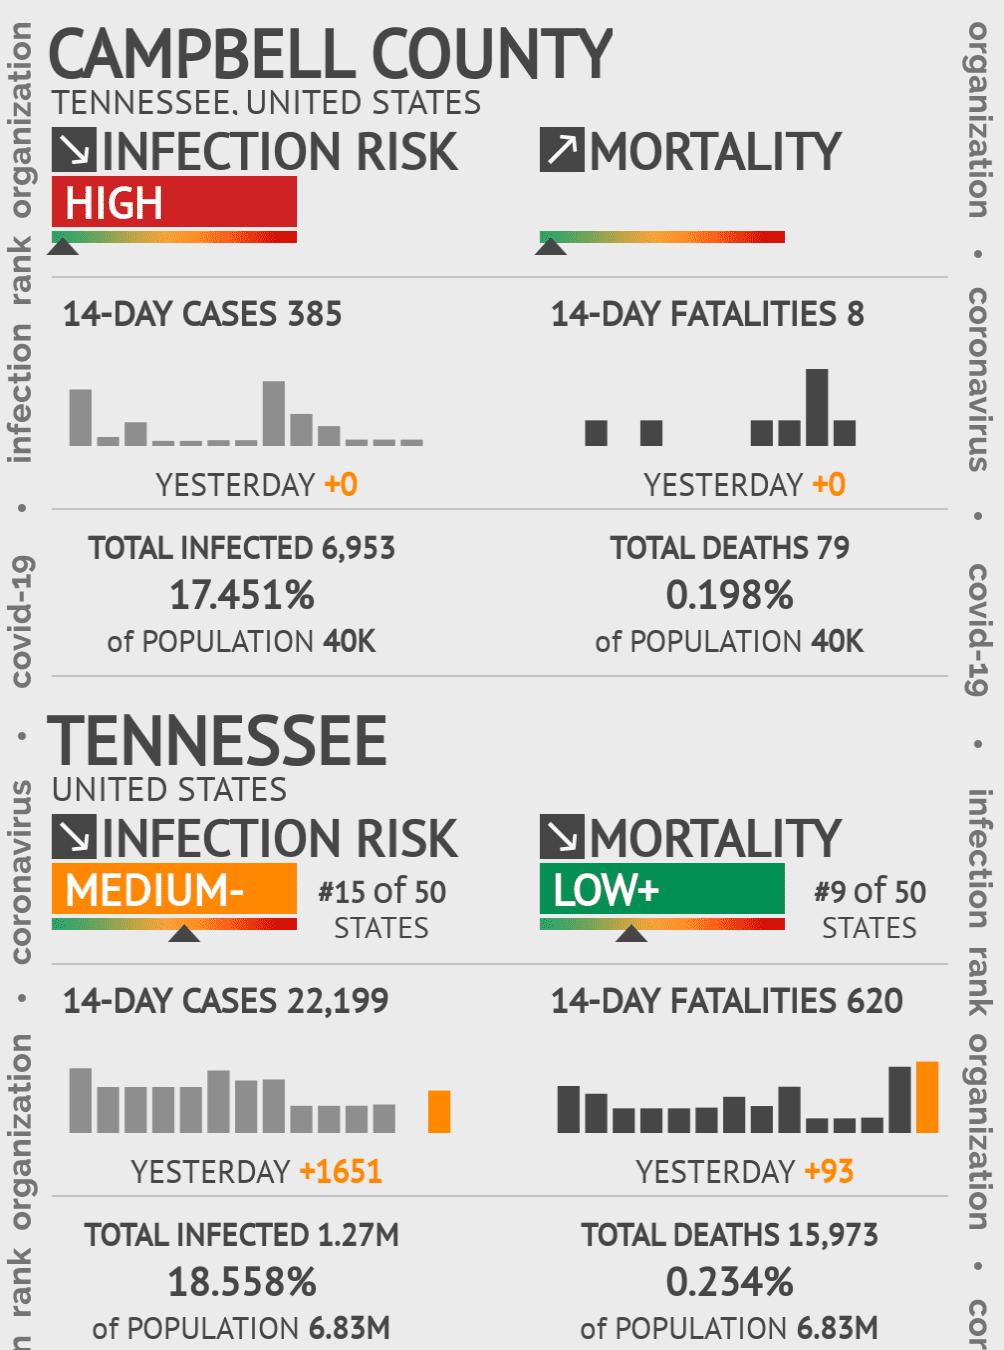 Campbell County Coronavirus Covid-19 Risk of Infection on March 23, 2021